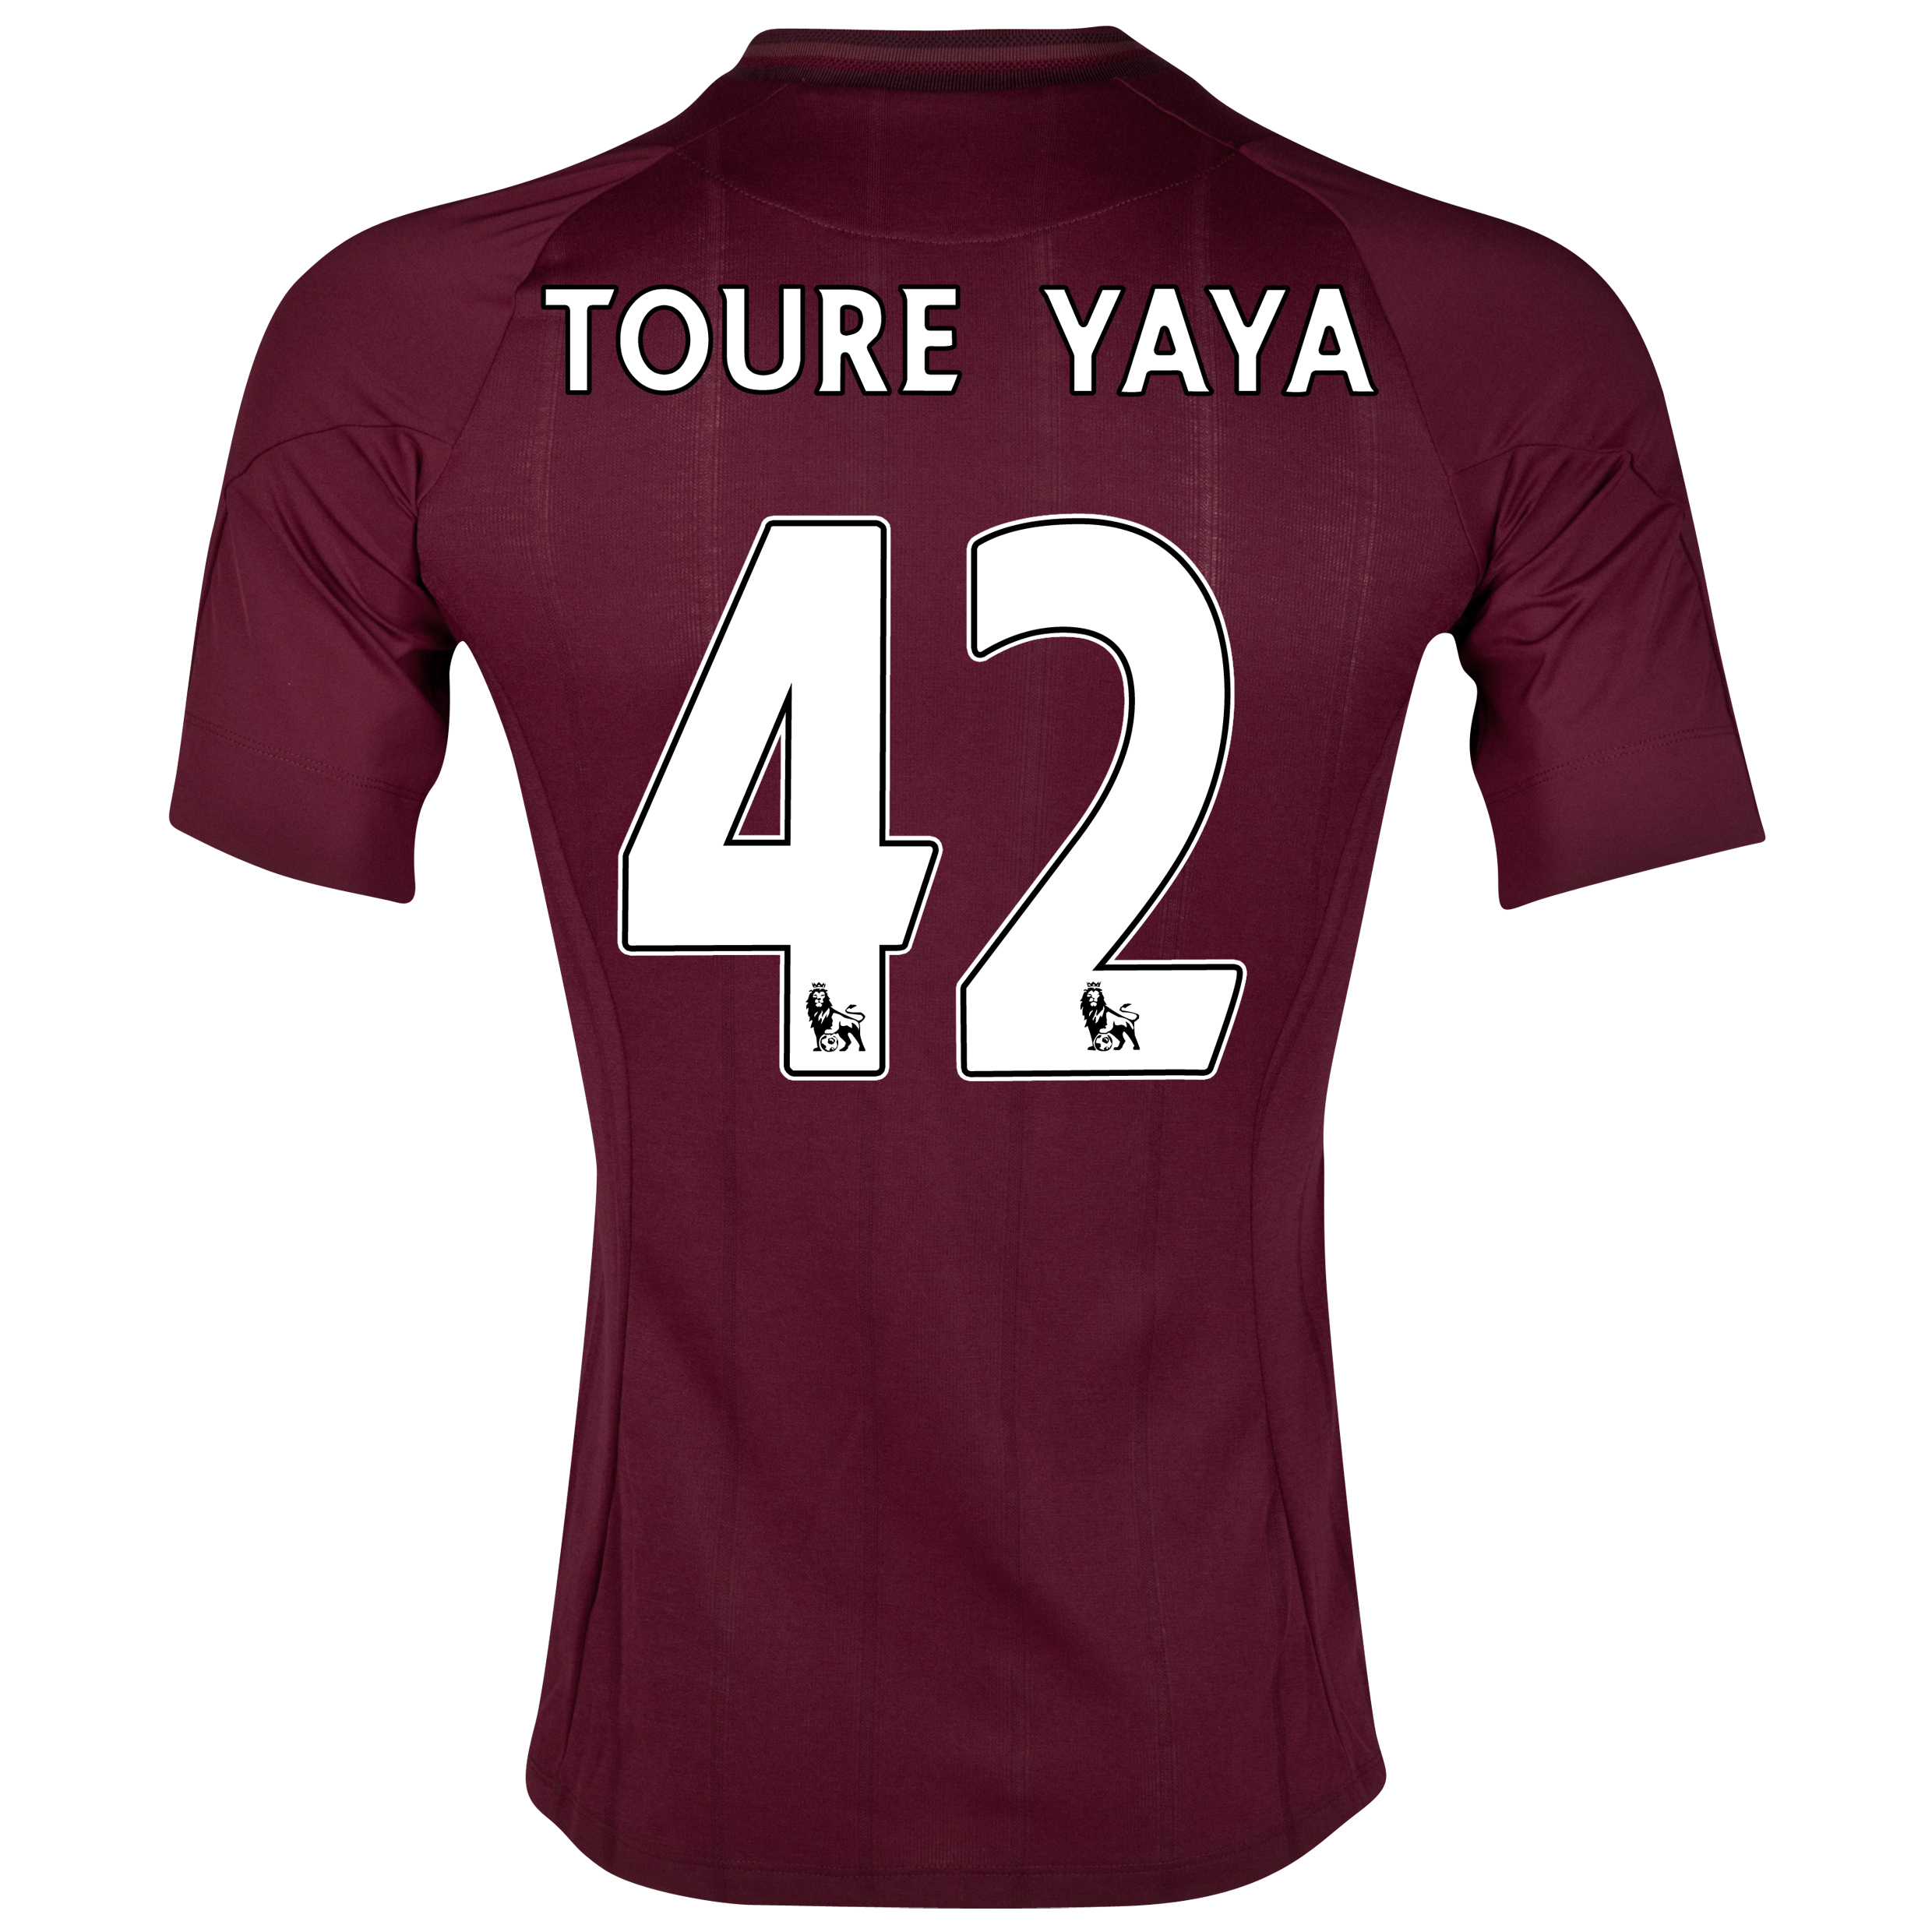 Manchester City Away Shirt 2012/13 with Toure Yaya 42 printing